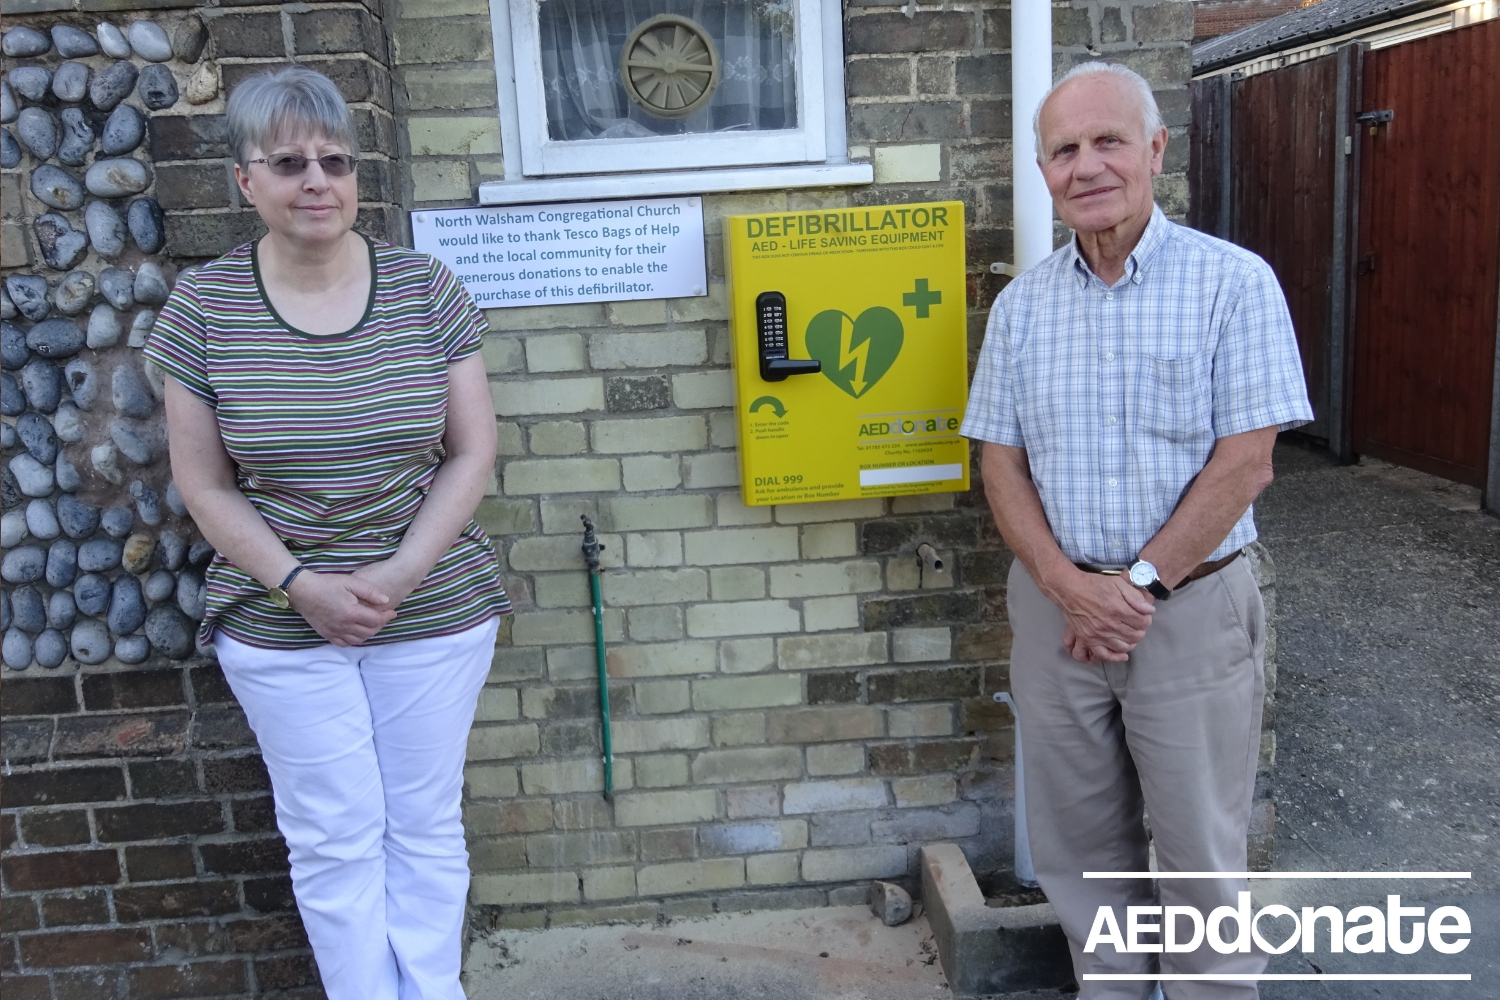 AED Installed at North Walsham Congregational Church